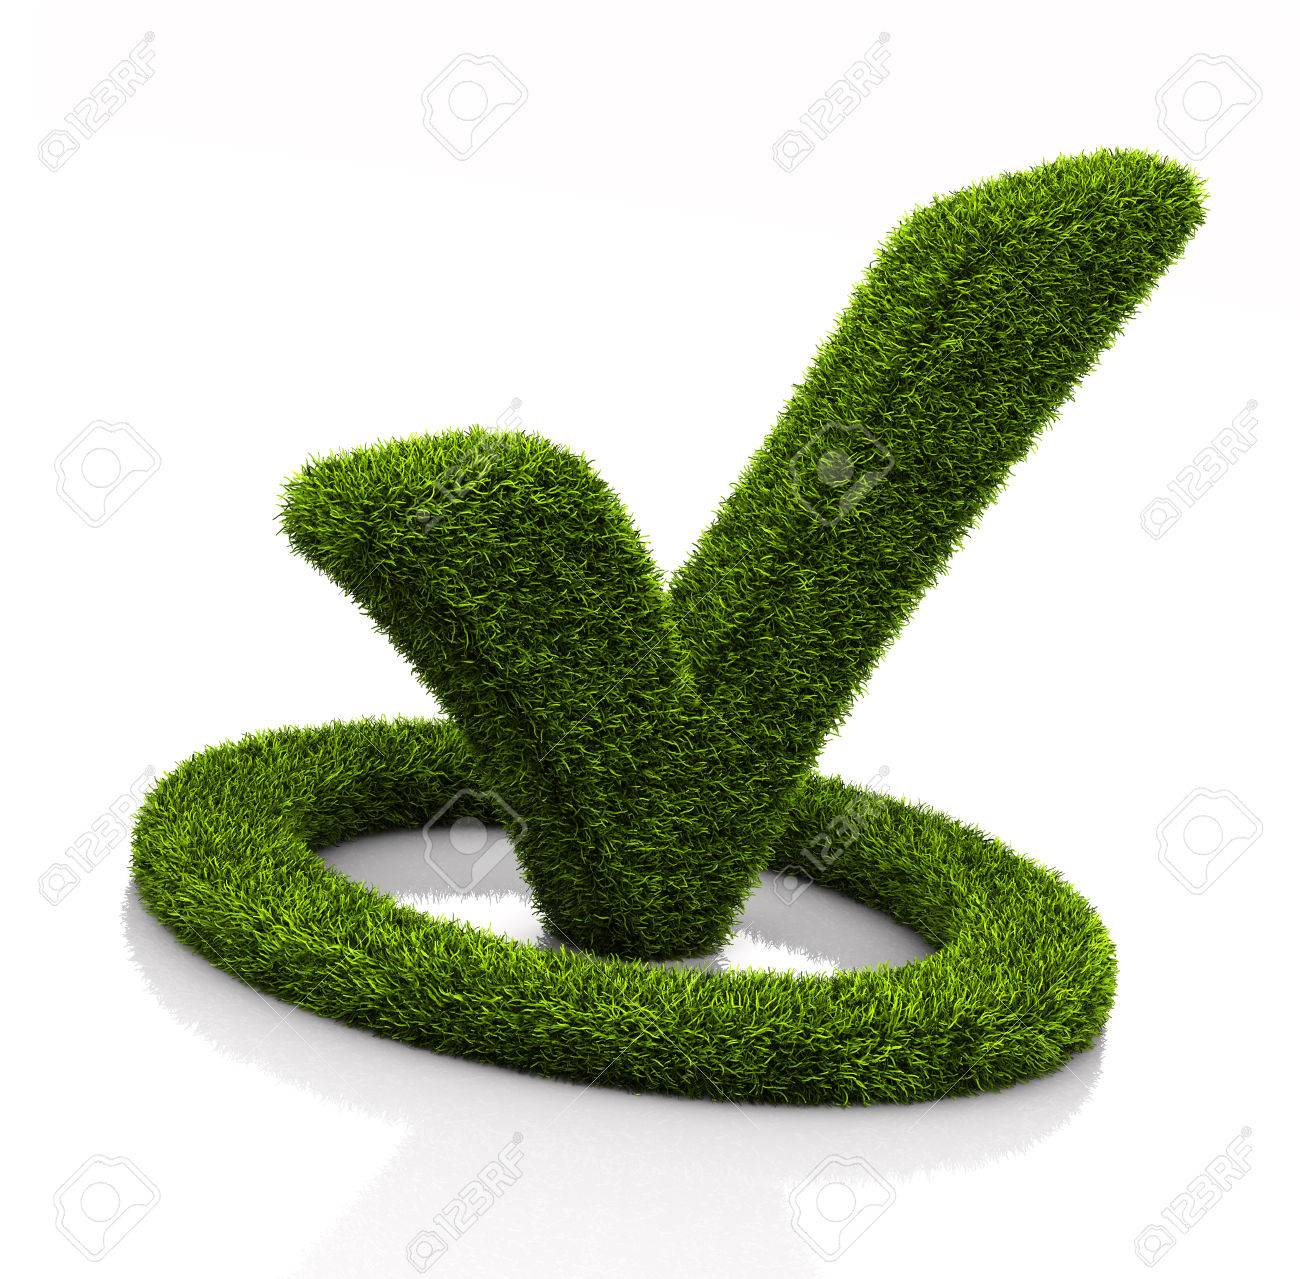 Green grassed check mark symbol in the circle on white background green grassed check mark symbol in the circle on white background stock photo 64610910 biocorpaavc Image collections